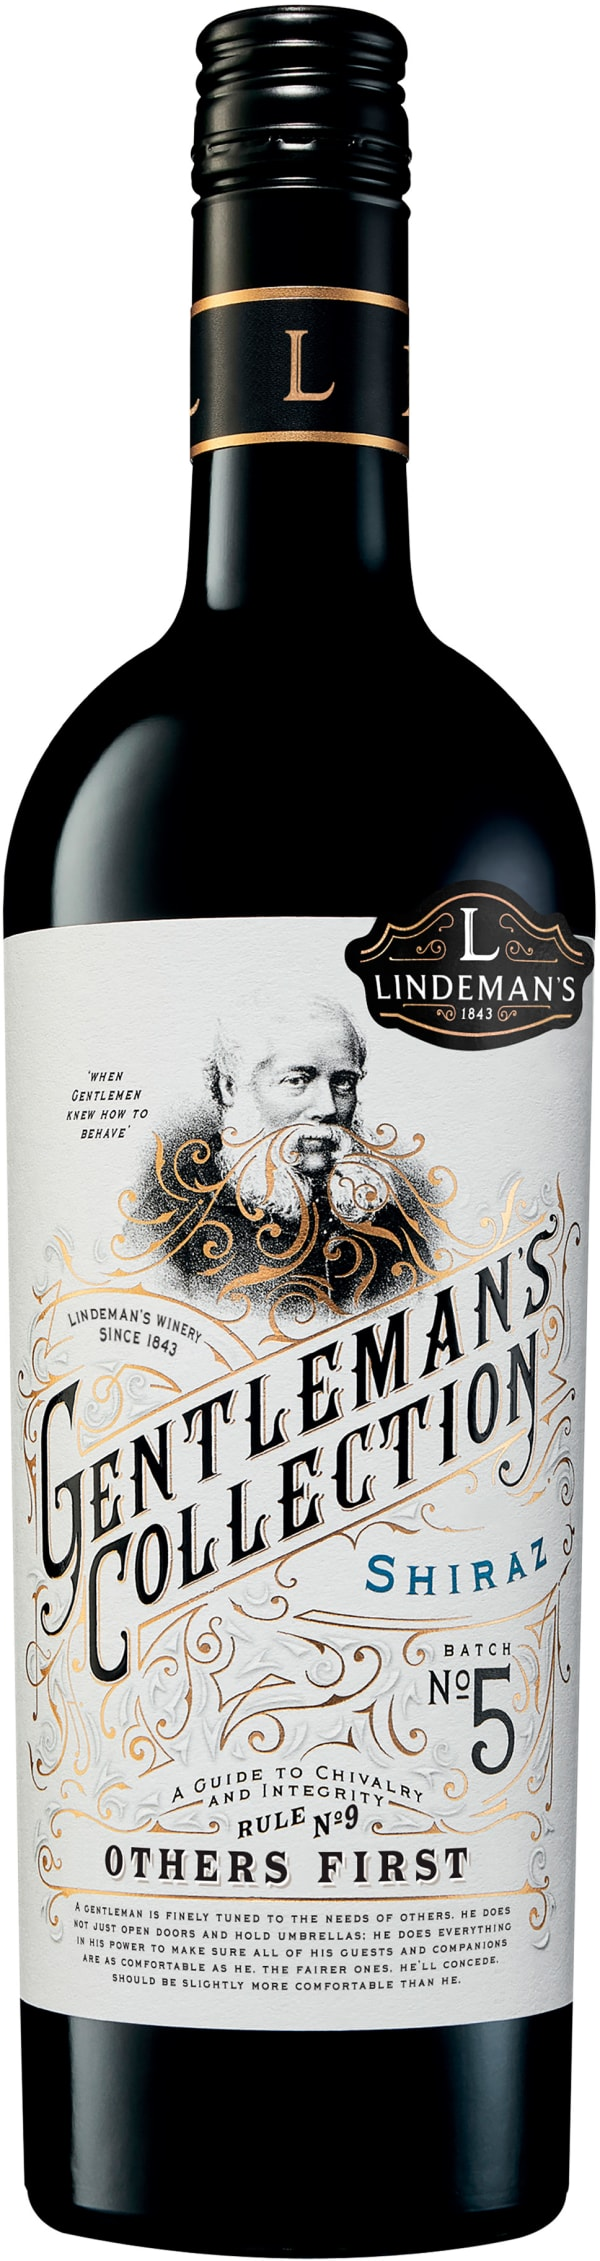 Lindeman's Gentlemans Collection Shiraz 2019